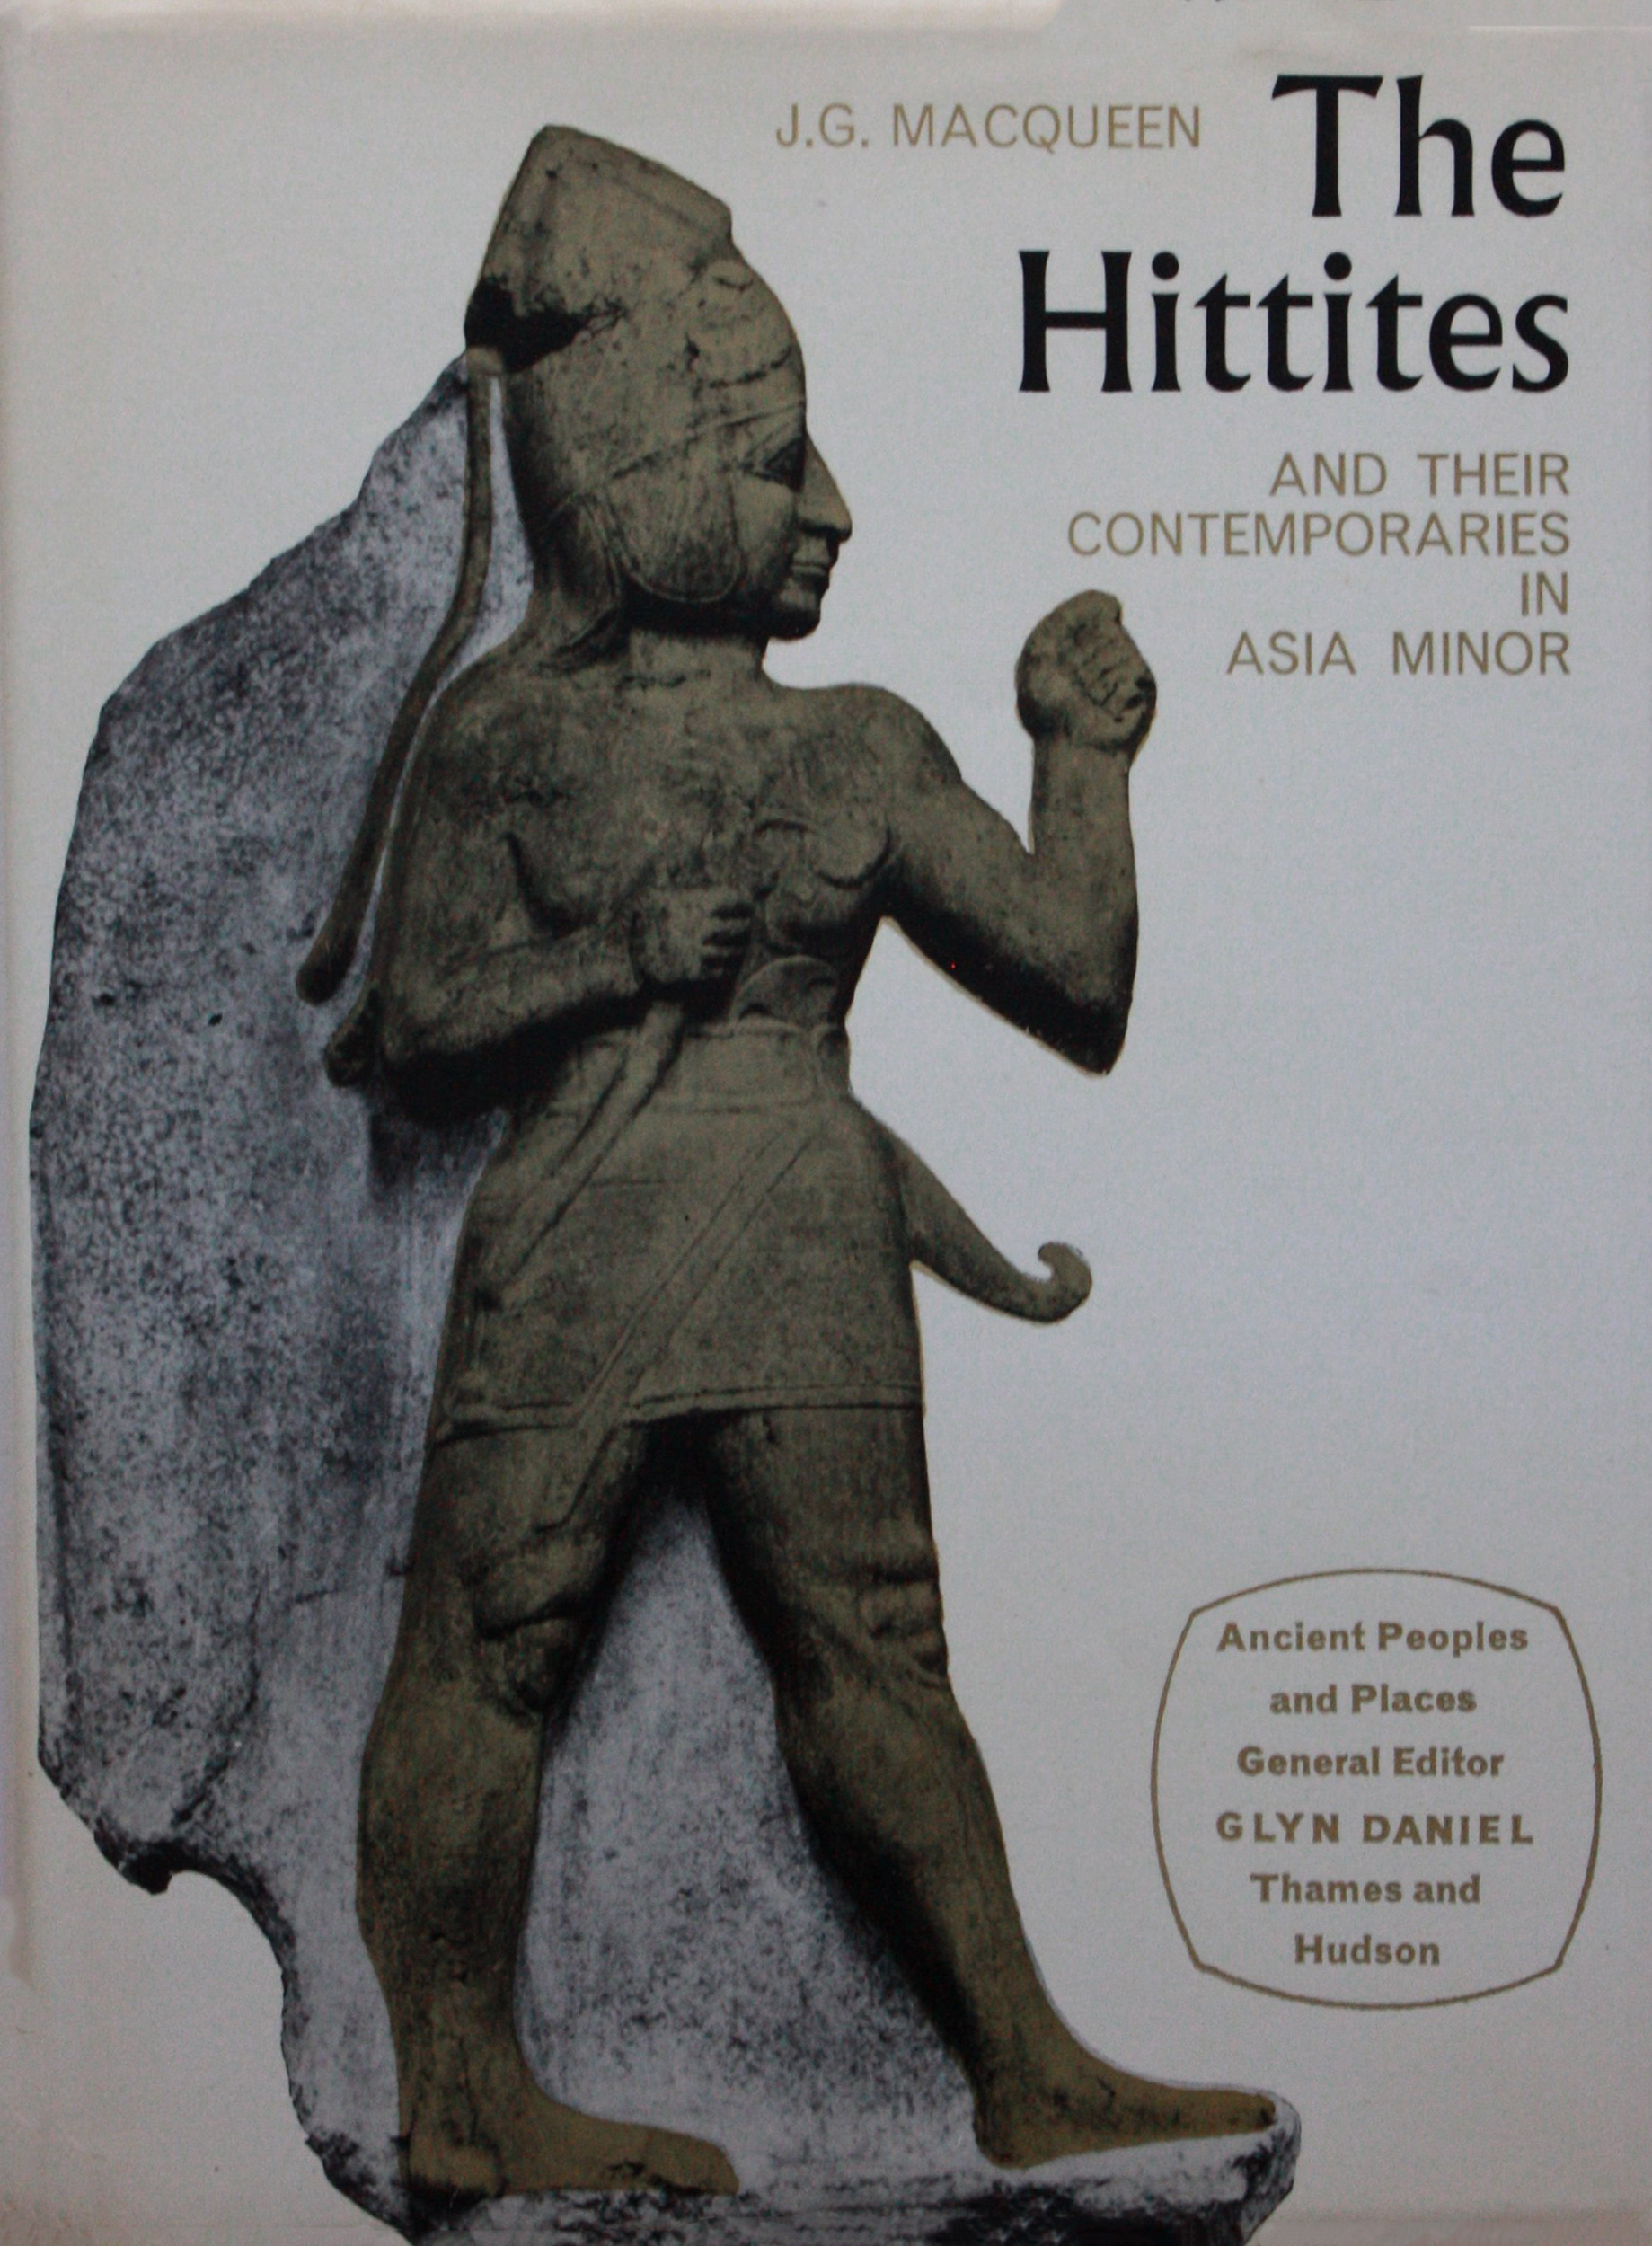 The Hittites and Their Contemporaries in Asia Minor  by  J.G. MacQueen